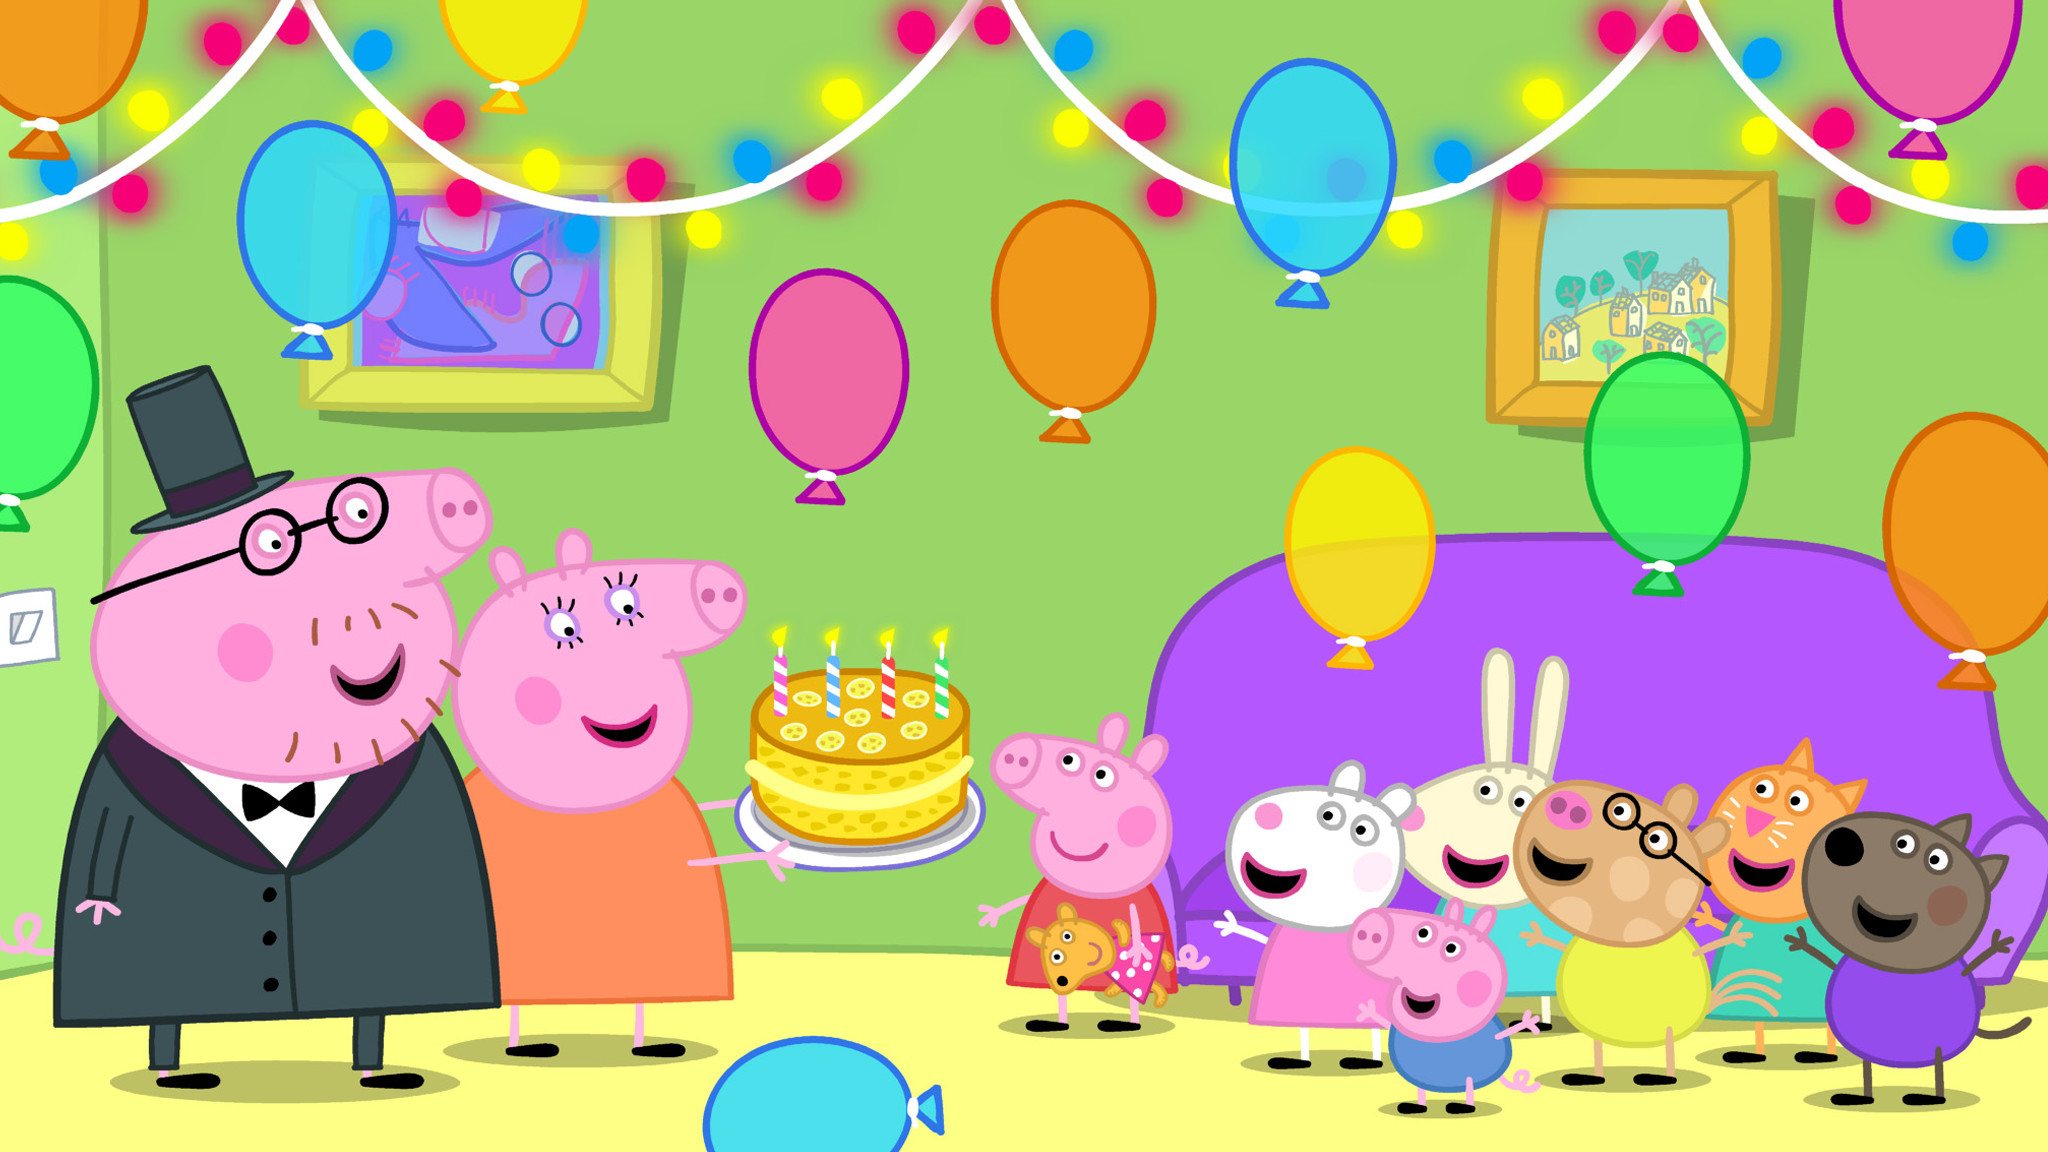 Rai Yoyo Peppa Pig - S8E3 - Lots of Muddy Puddles